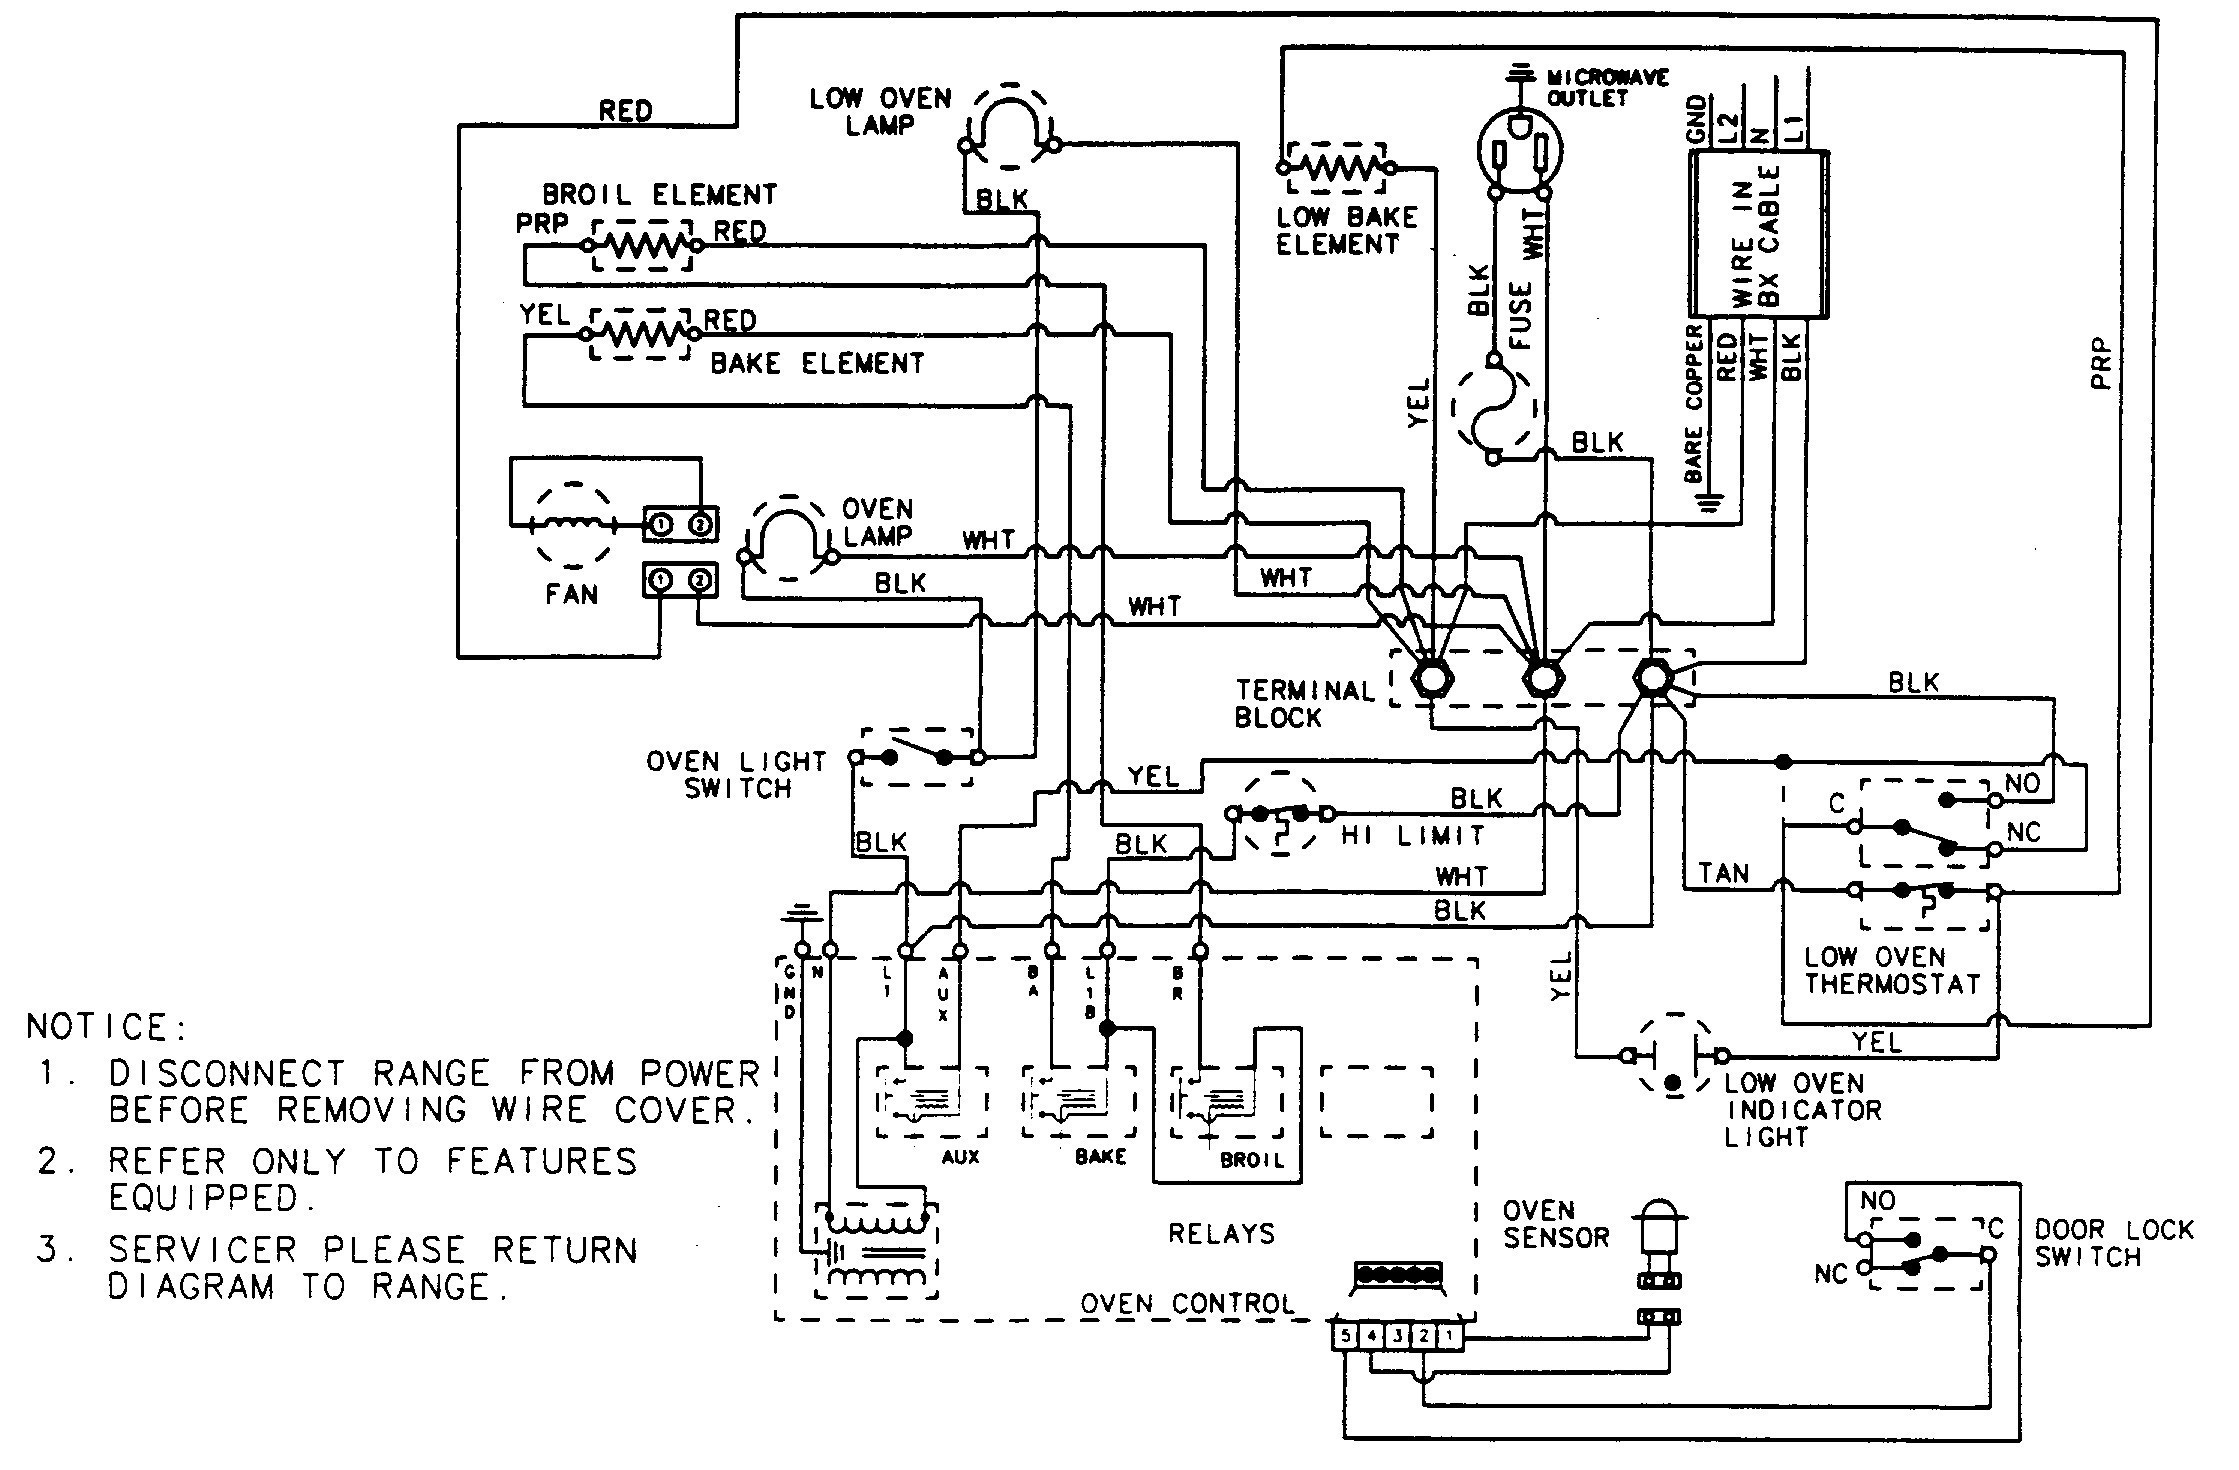 1960 westinghouse wall ovens wiring diagram best wiring library Frigidaire Oven Wiring Diagram Model Ples399ecf 1960 westinghouse wall ovens wiring diagram auto electrical wiring wiring diagram for whirlpool double ovens 1960